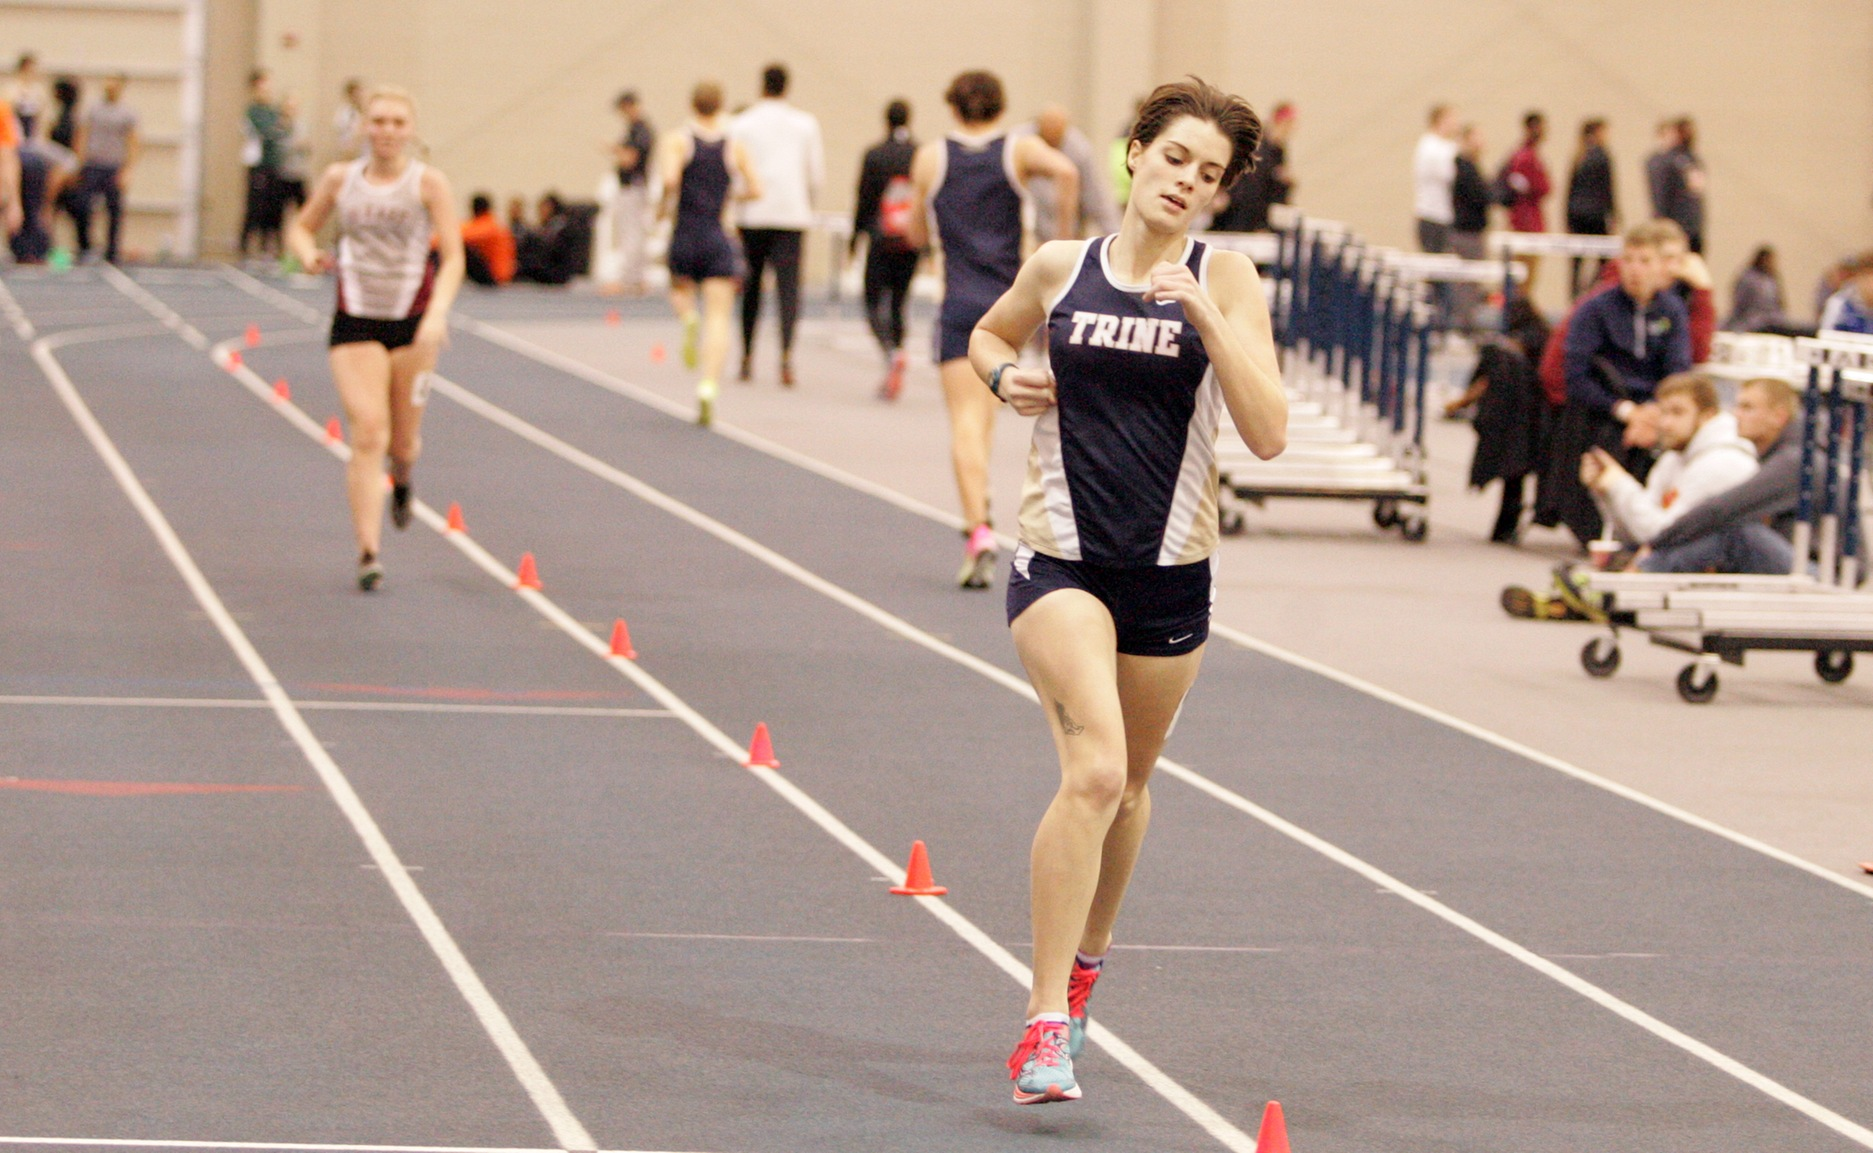 Trine Women Compete at Ball State Challenge